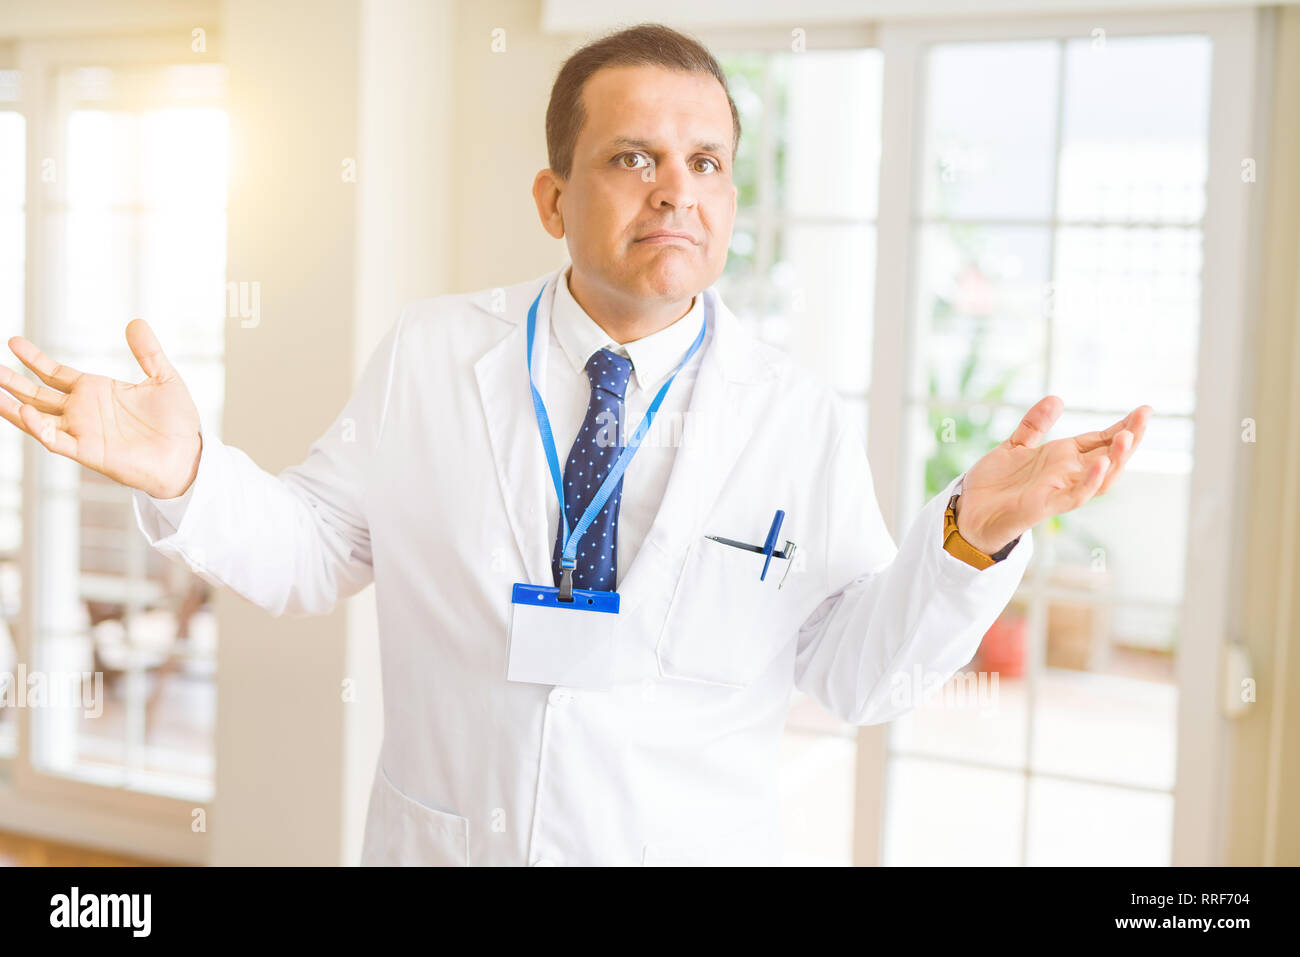 Middle age doctor man wearing medical coat and id card badge over white background clueless and confused expression with arms and hands raised. Doubt  - Stock Image